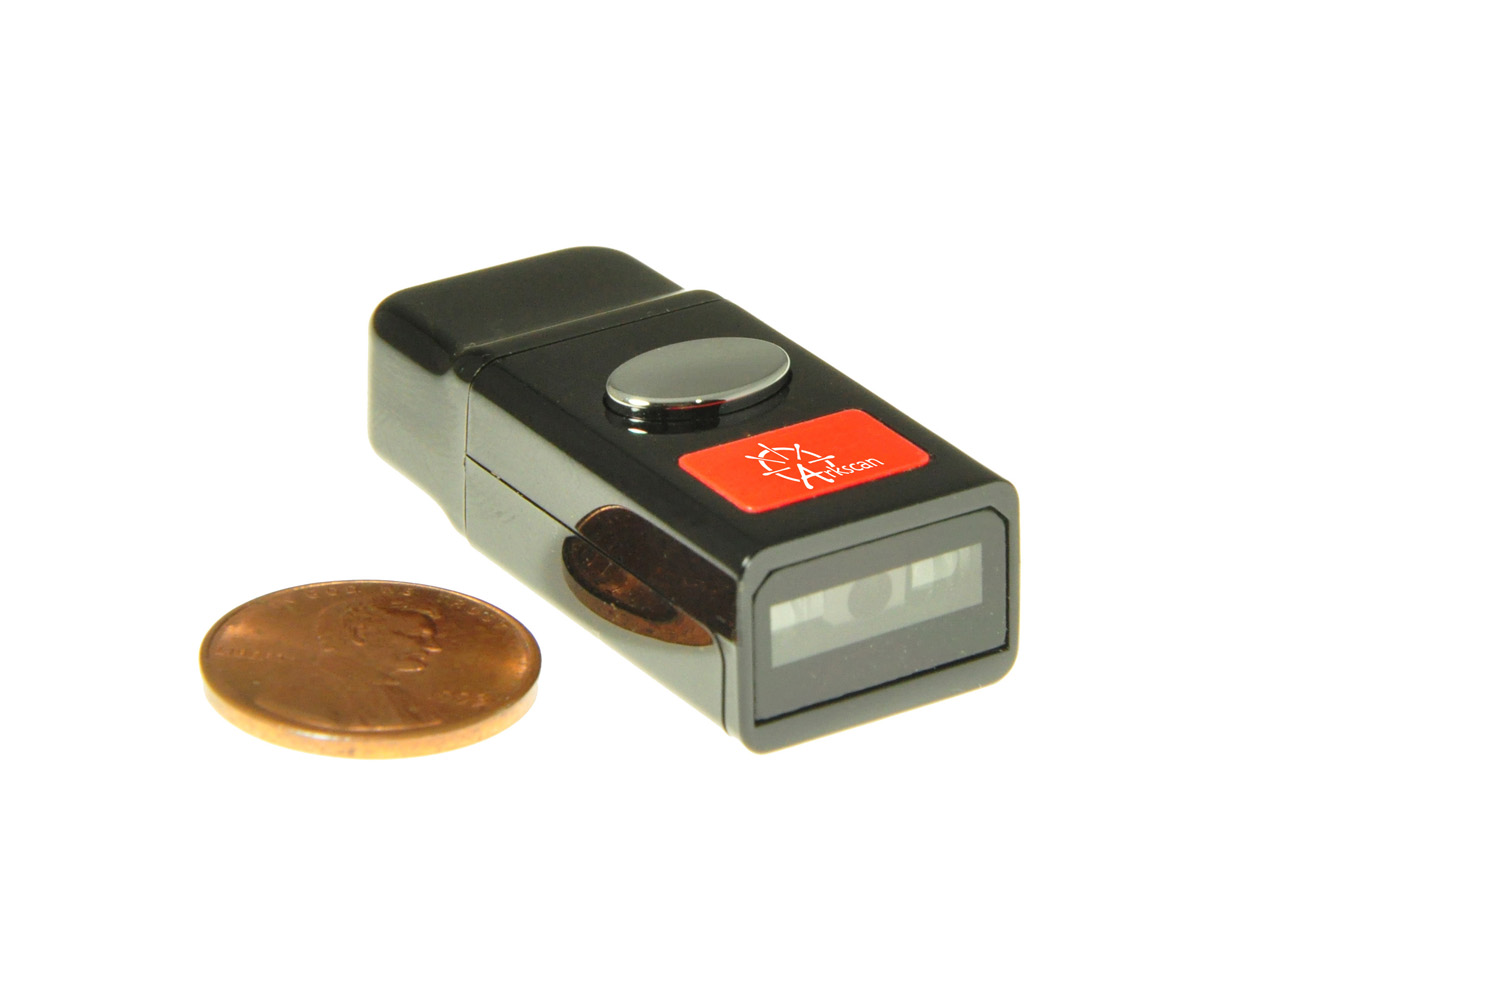 ES201 Mini USB - ARKSCAN, LLC